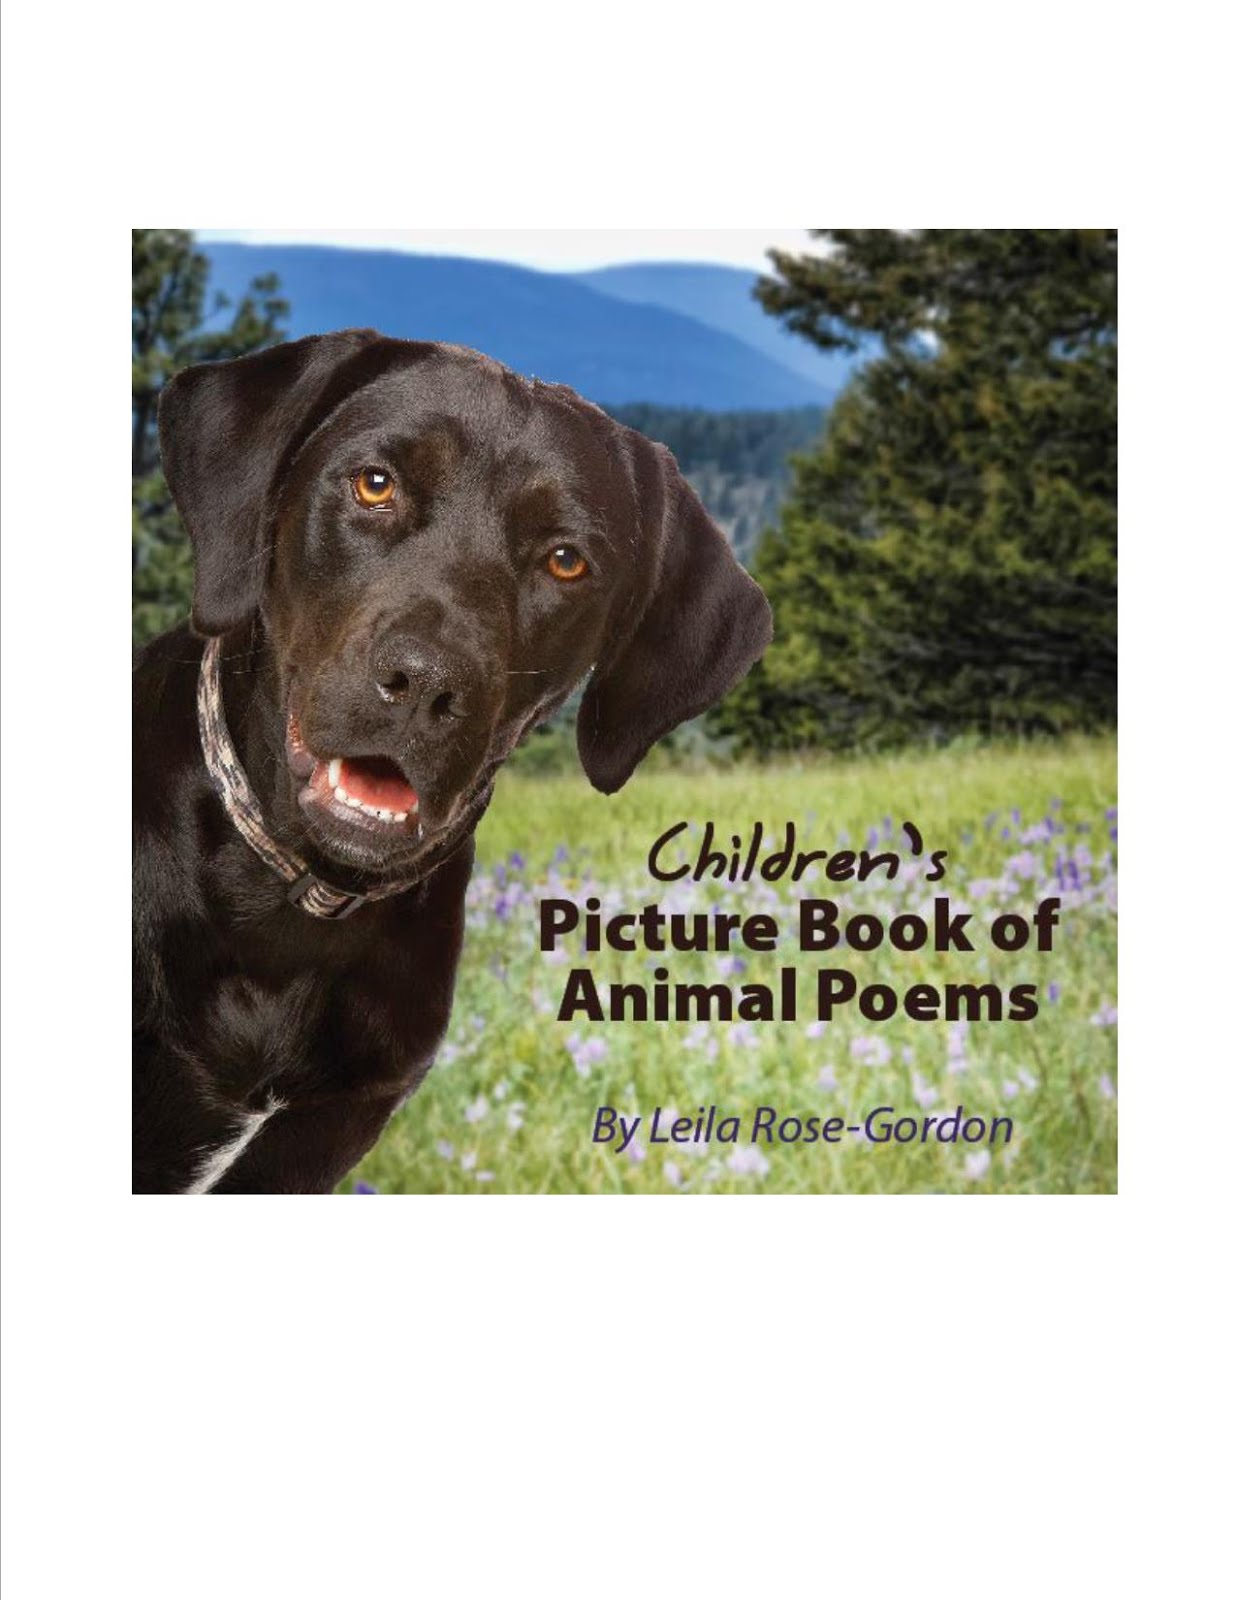 Children's Picture Book of Animal Poems